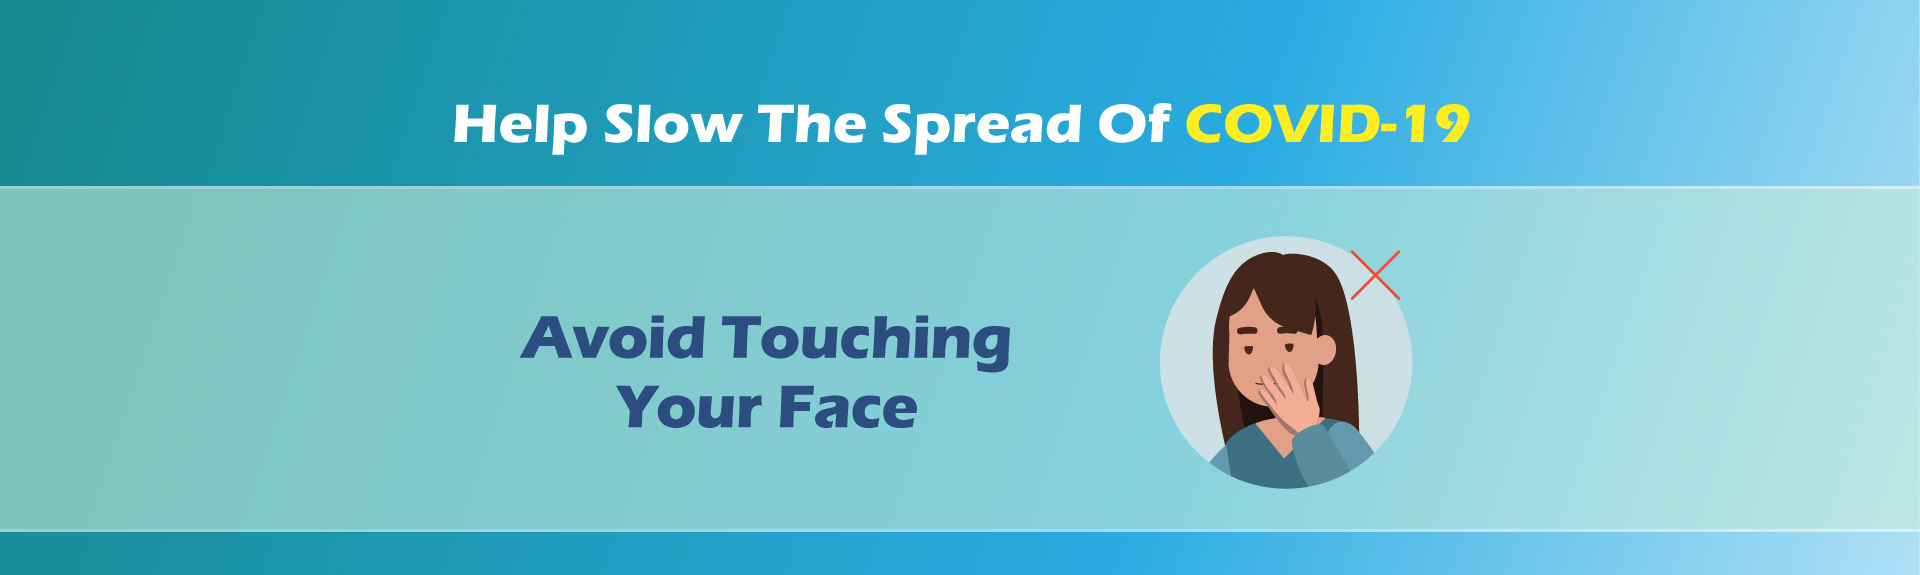 Help Slow The Spread Of COVID-19 - Avoid Touching Your Face